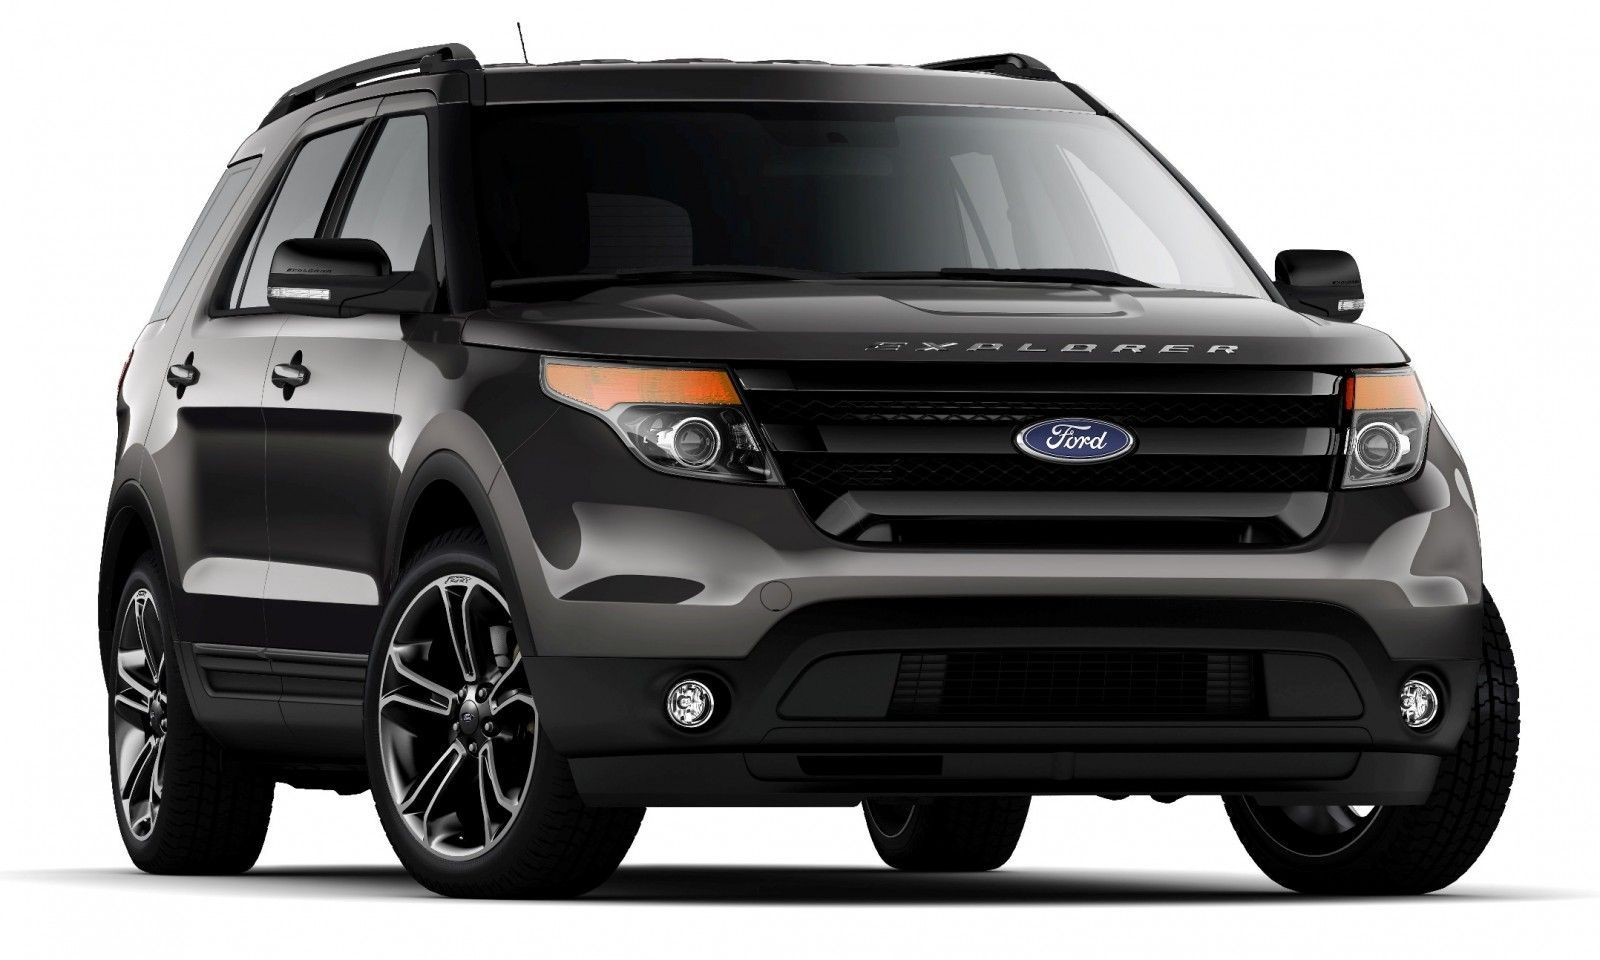 2015 Ford Explorer XLT Appearance Pack Adds 2.0L Turbo